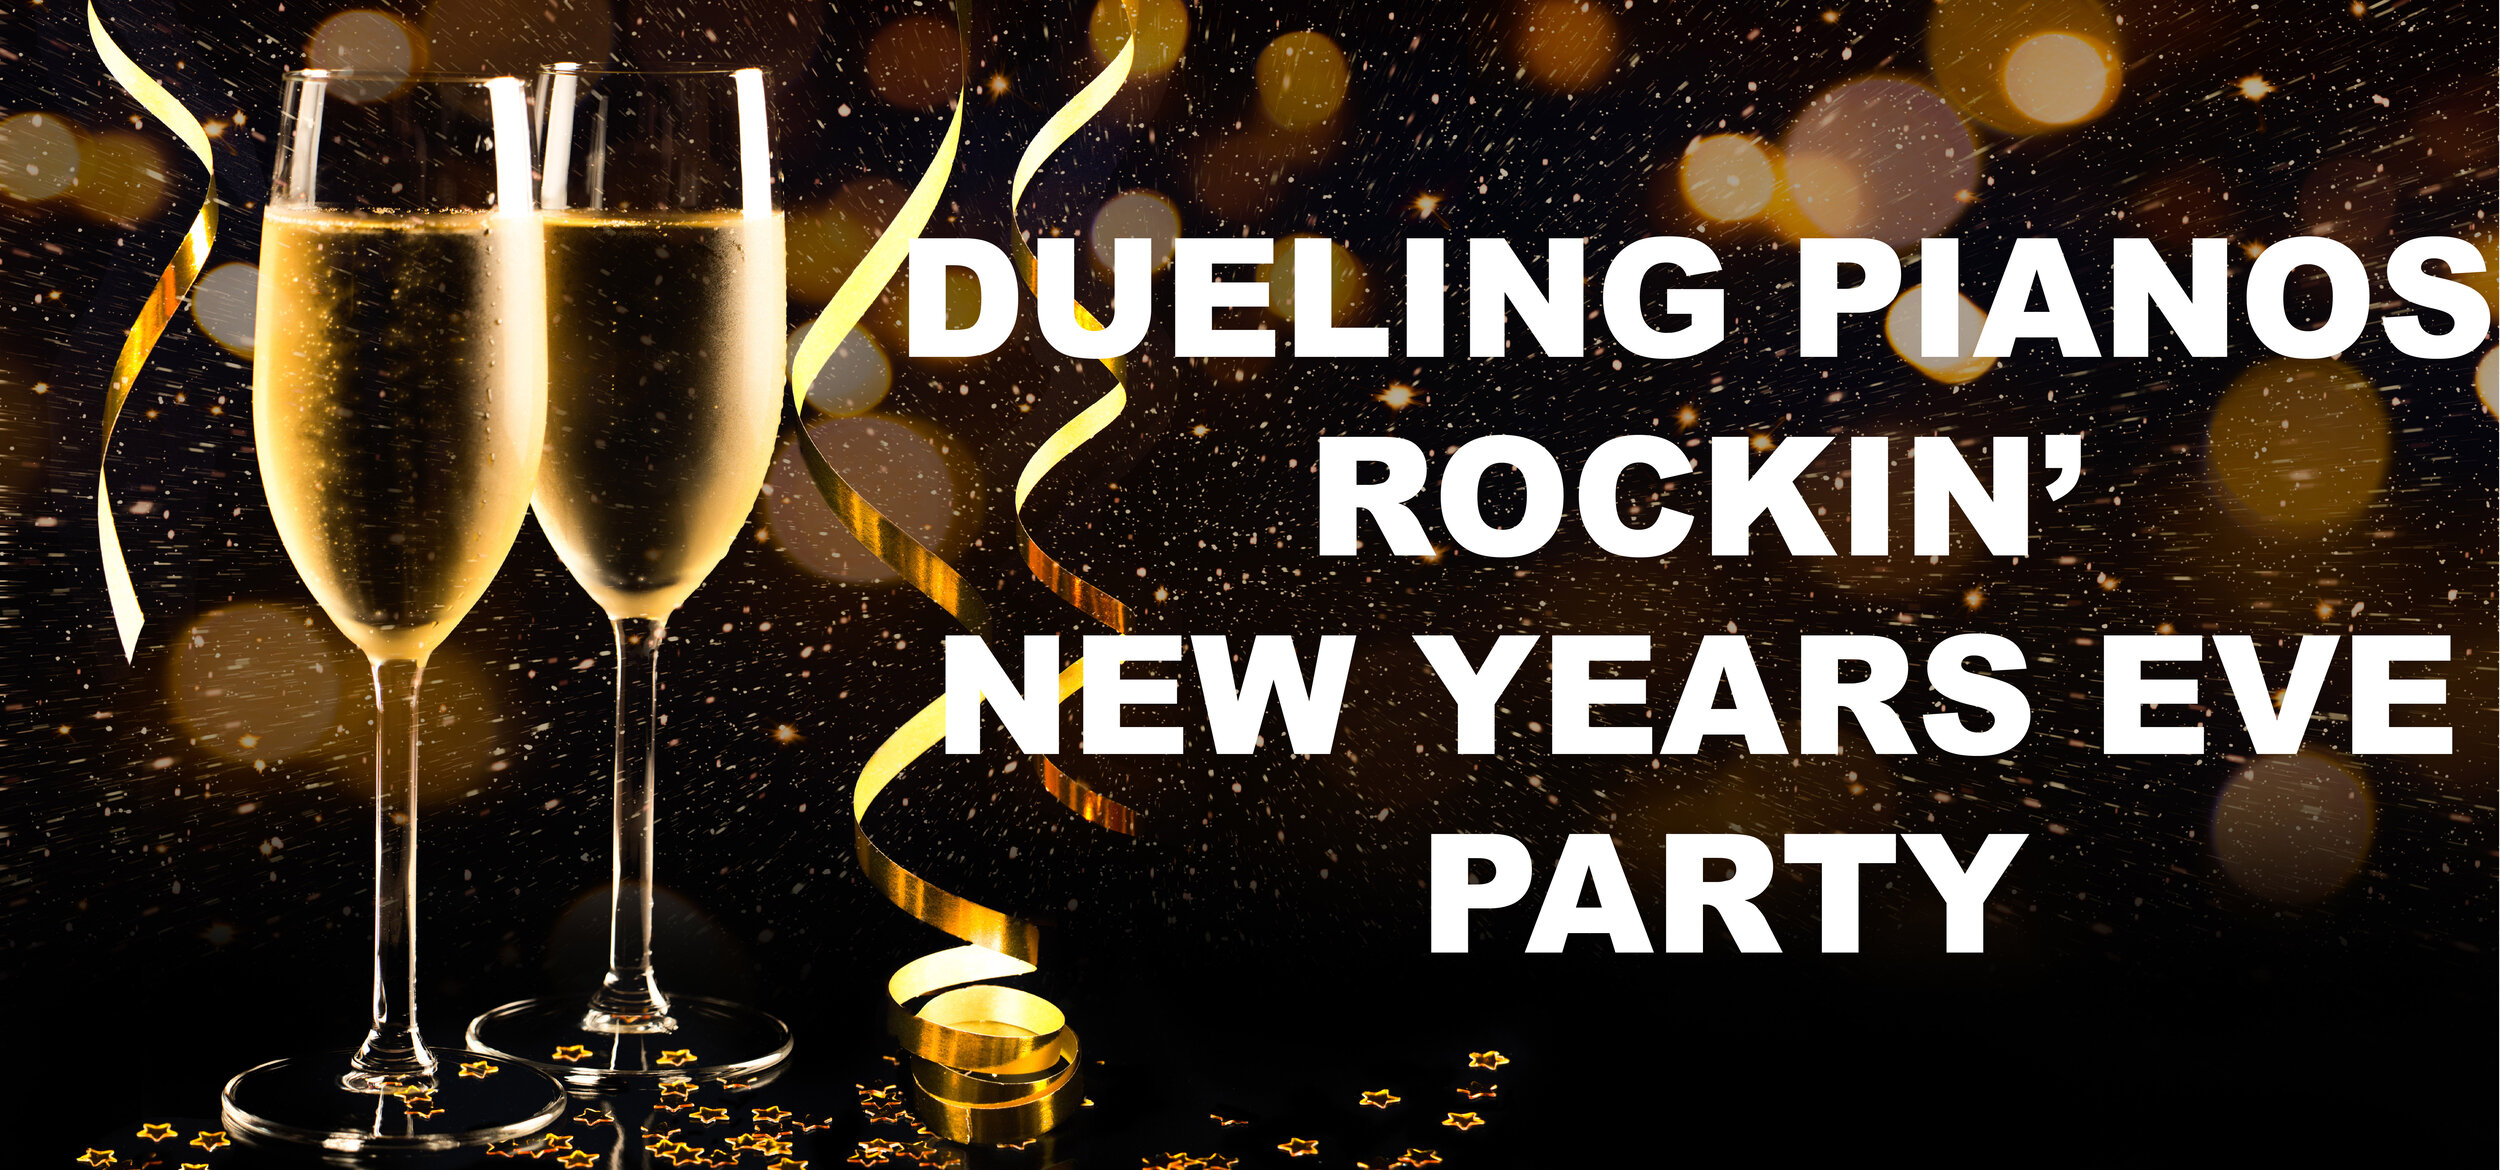 THE PARTY OF THE YEAR IS HERE AGAIN… The Dueling Pianos Rockin New Years Eve Party at the Warehouse TICKETS AND TABLES GO ON SALE 11/1 Get em while they last….